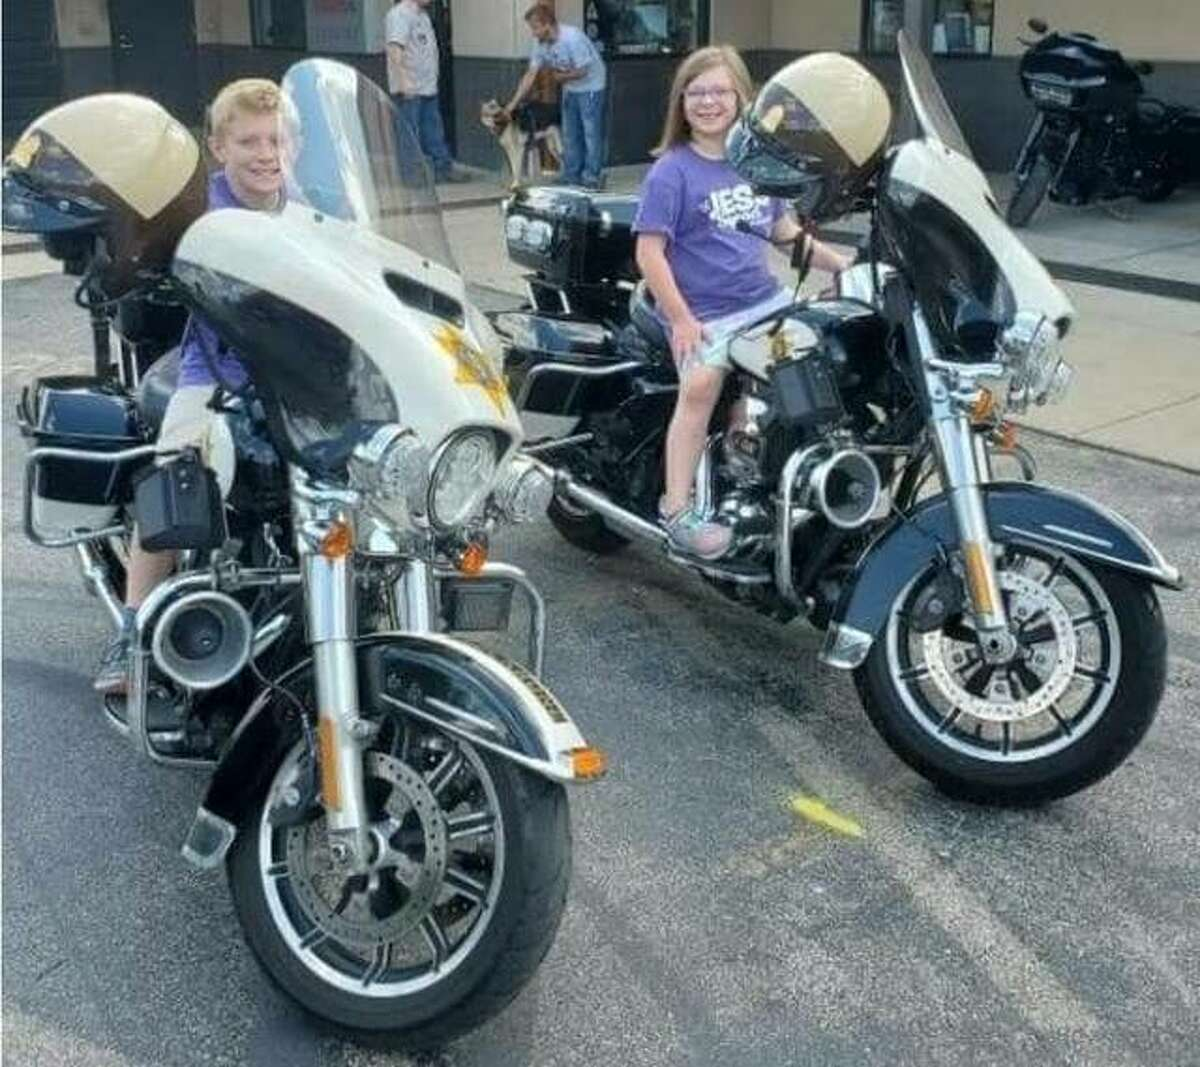 Two Make A Wish children sit on Illinois State Police motorcycles that were used to escort the Ride for Wishes on Sept. 18. This year's event raised more than $11,000.